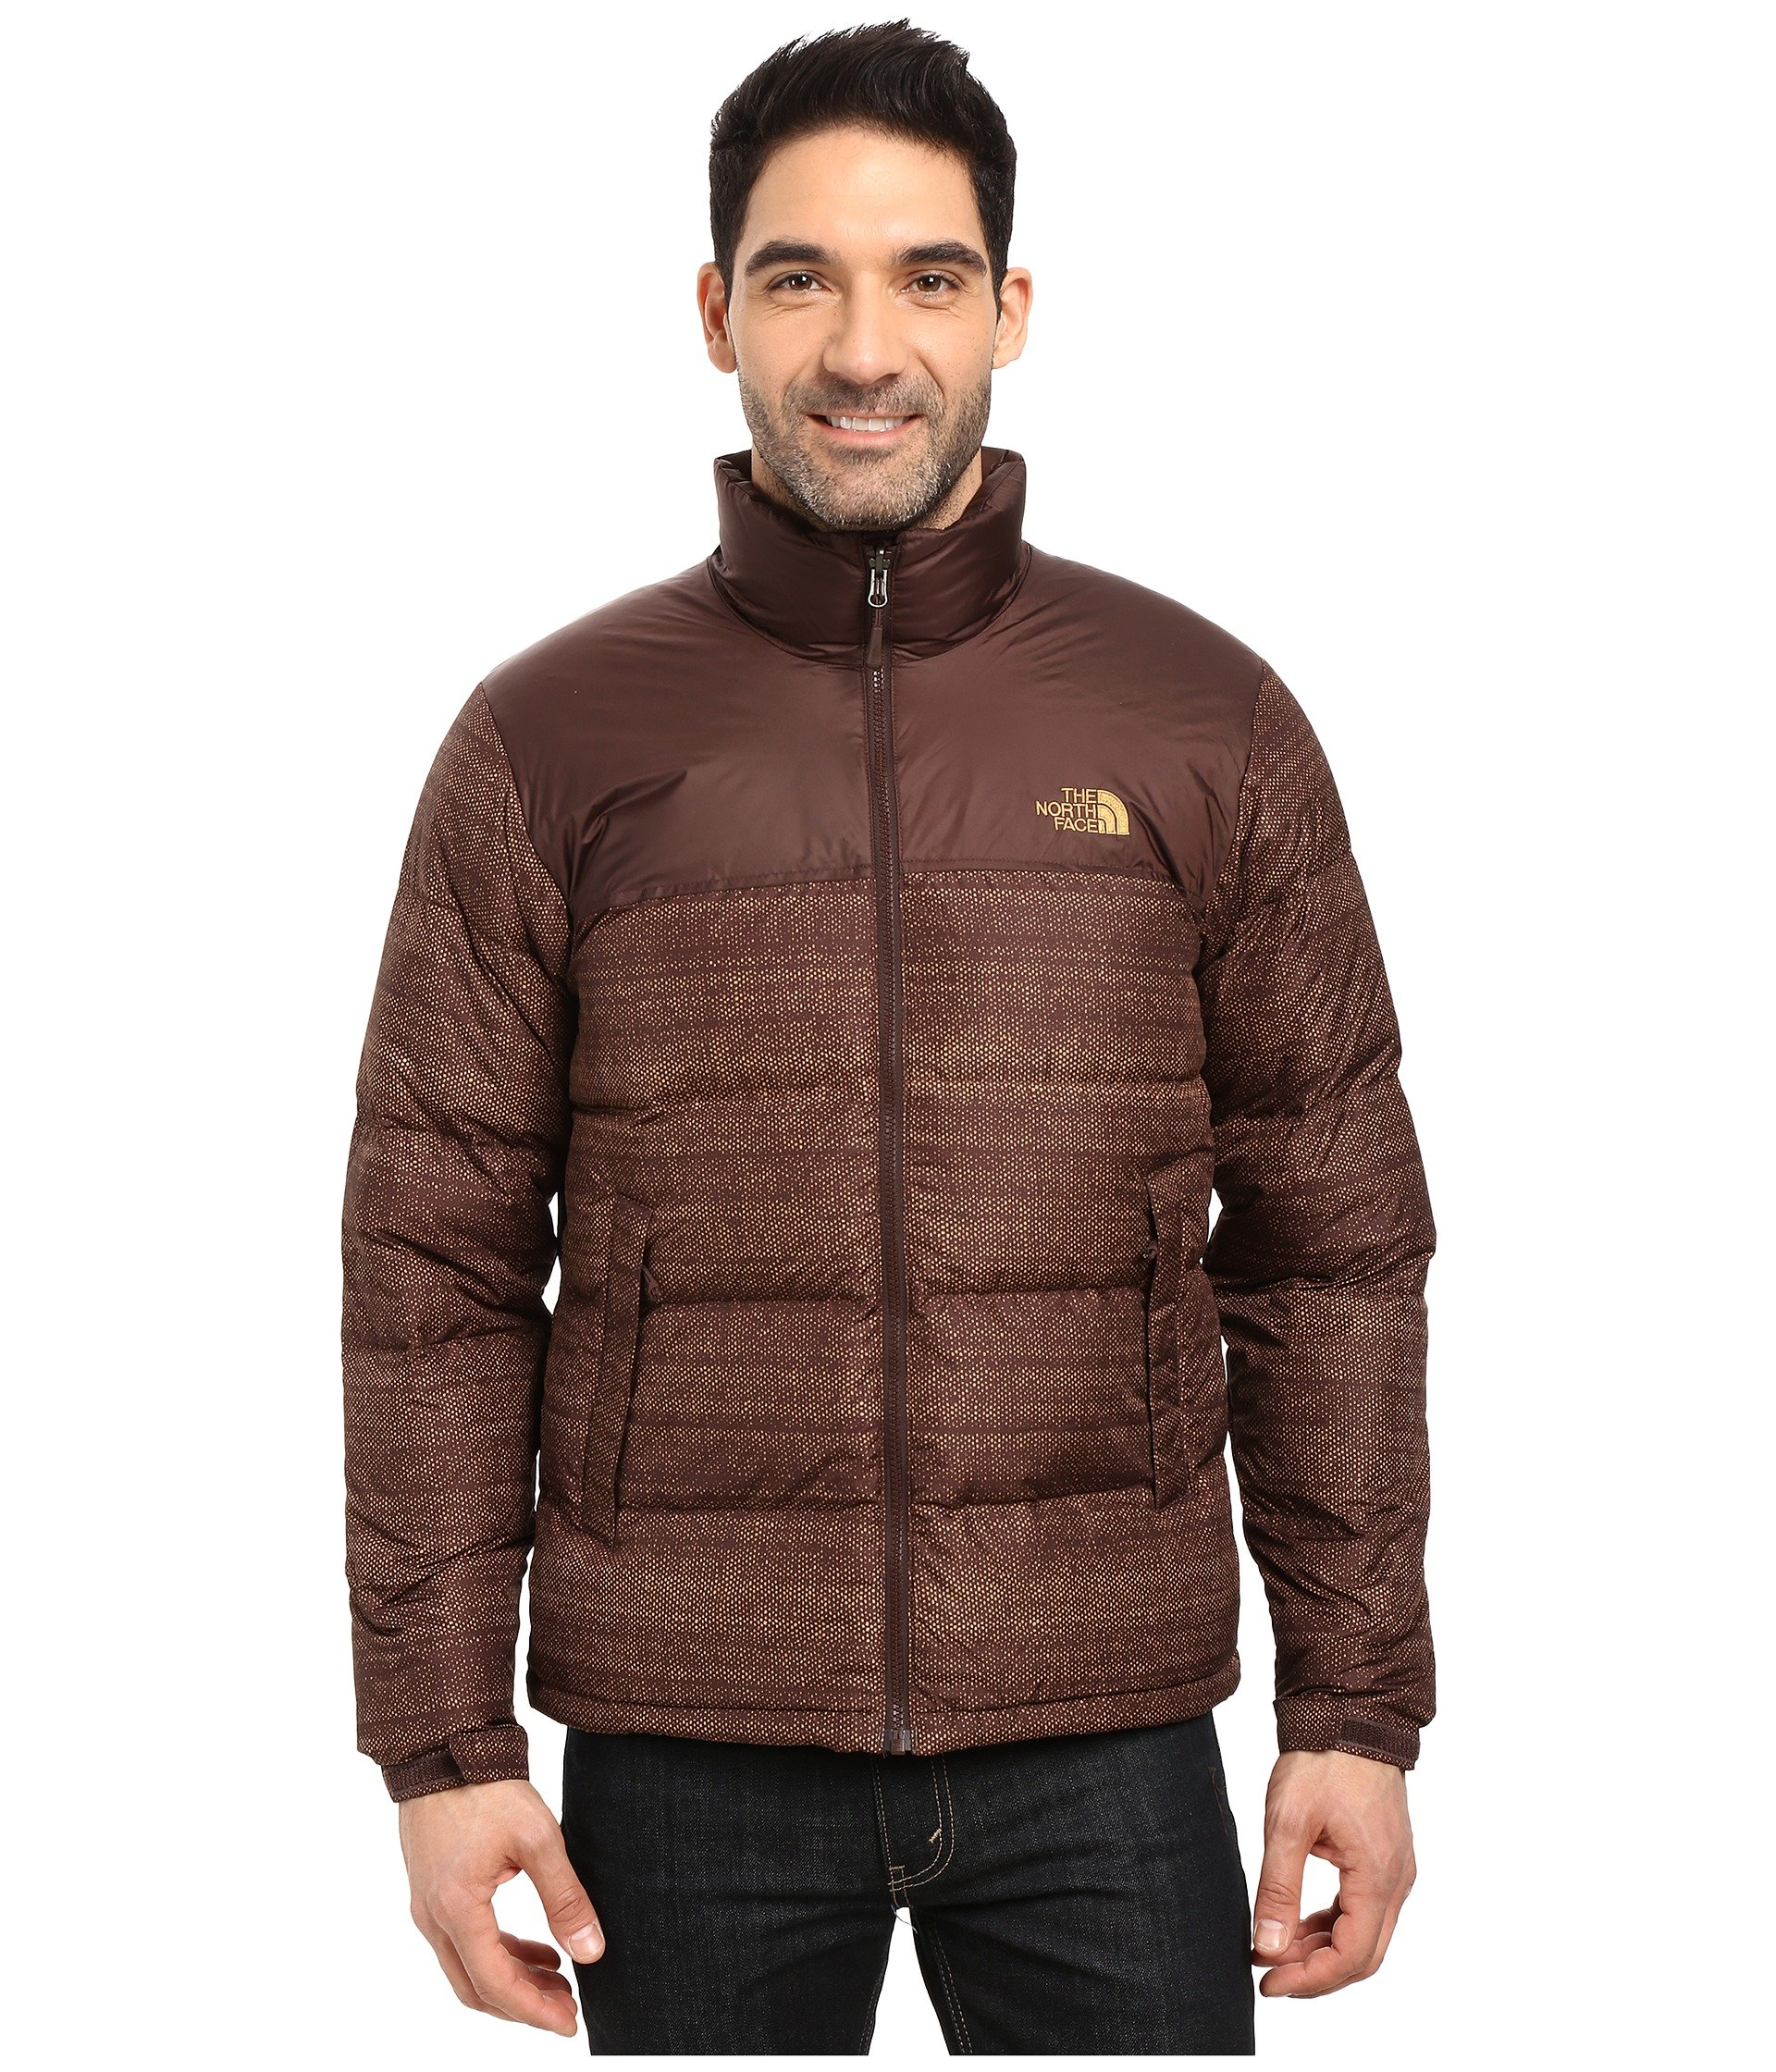 dc4e8681bb03 Product certified to the Responsible Down Standard (RDS) by Control Union.  Zip-in-compatible integration with complementing garments from The North  Face®.